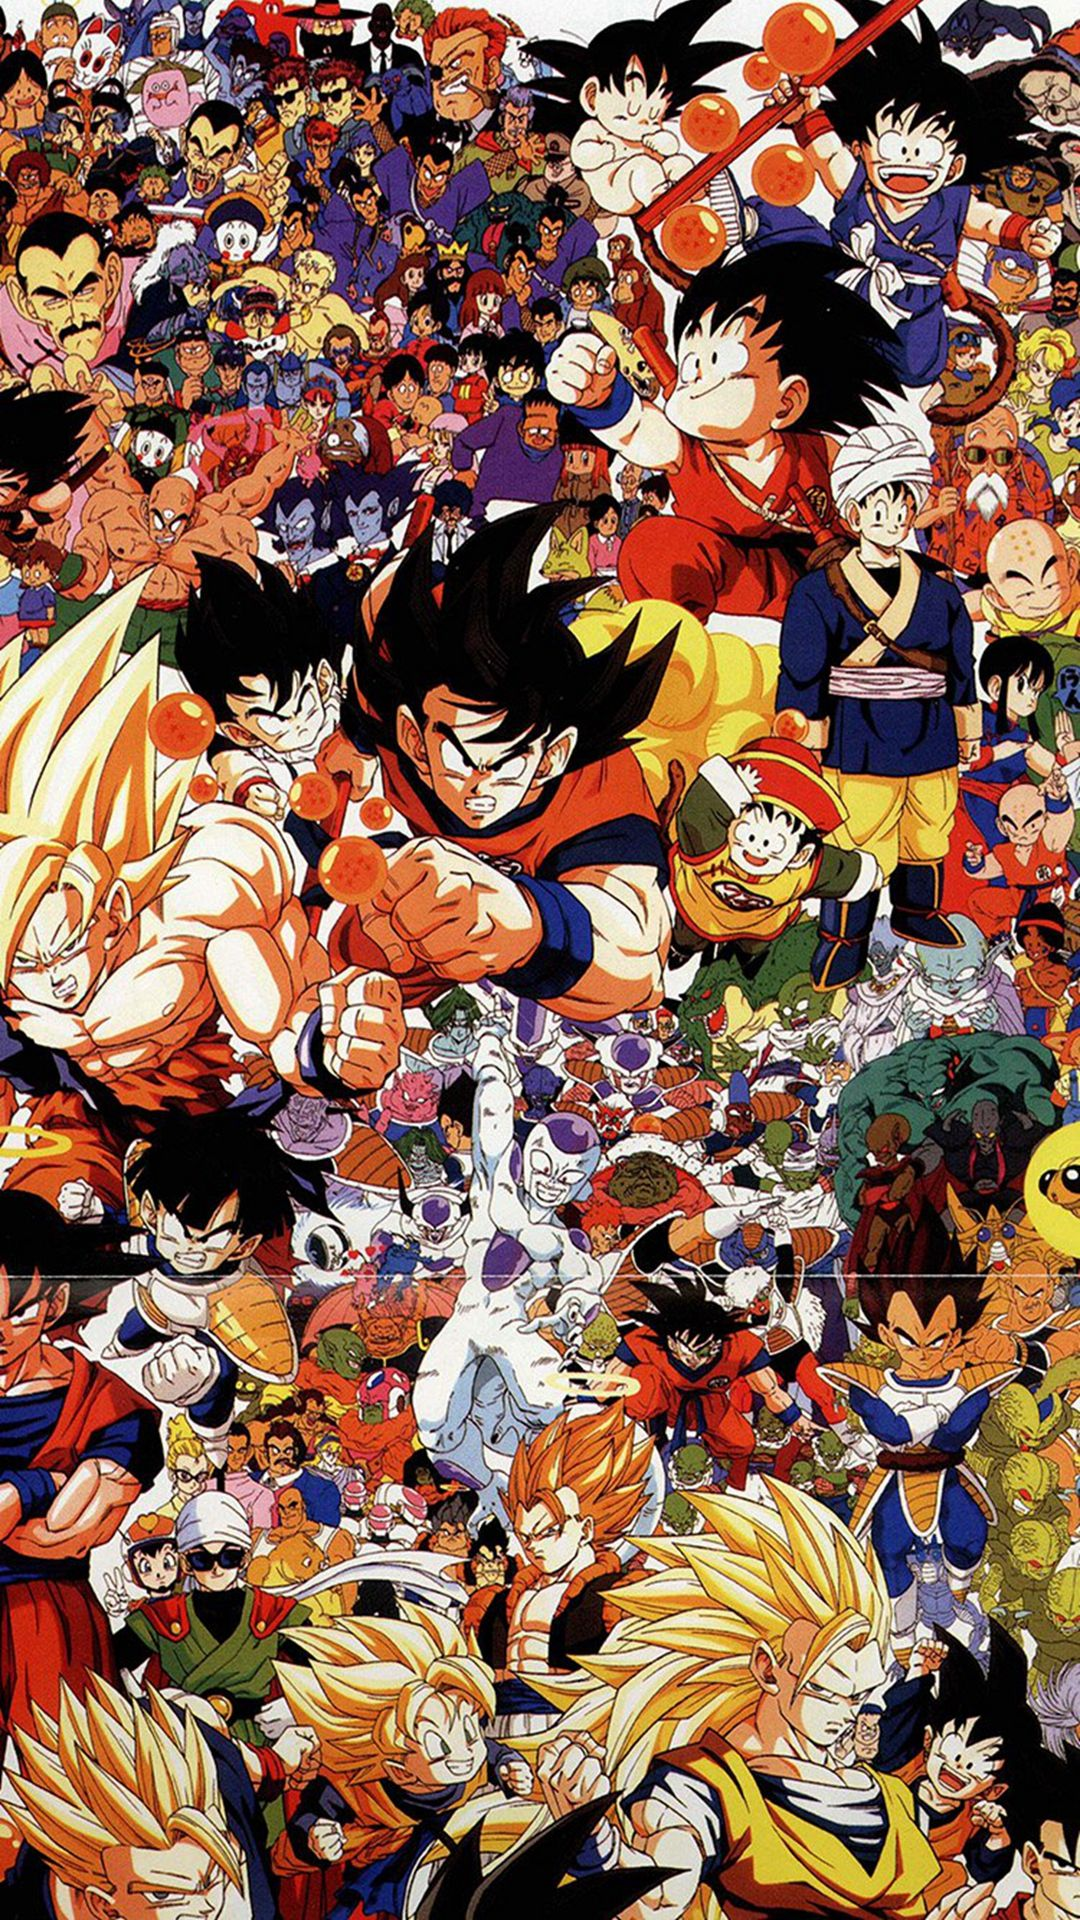 Dragonball Full Art Il Game Anime Iphone 6 Wallpaper Come